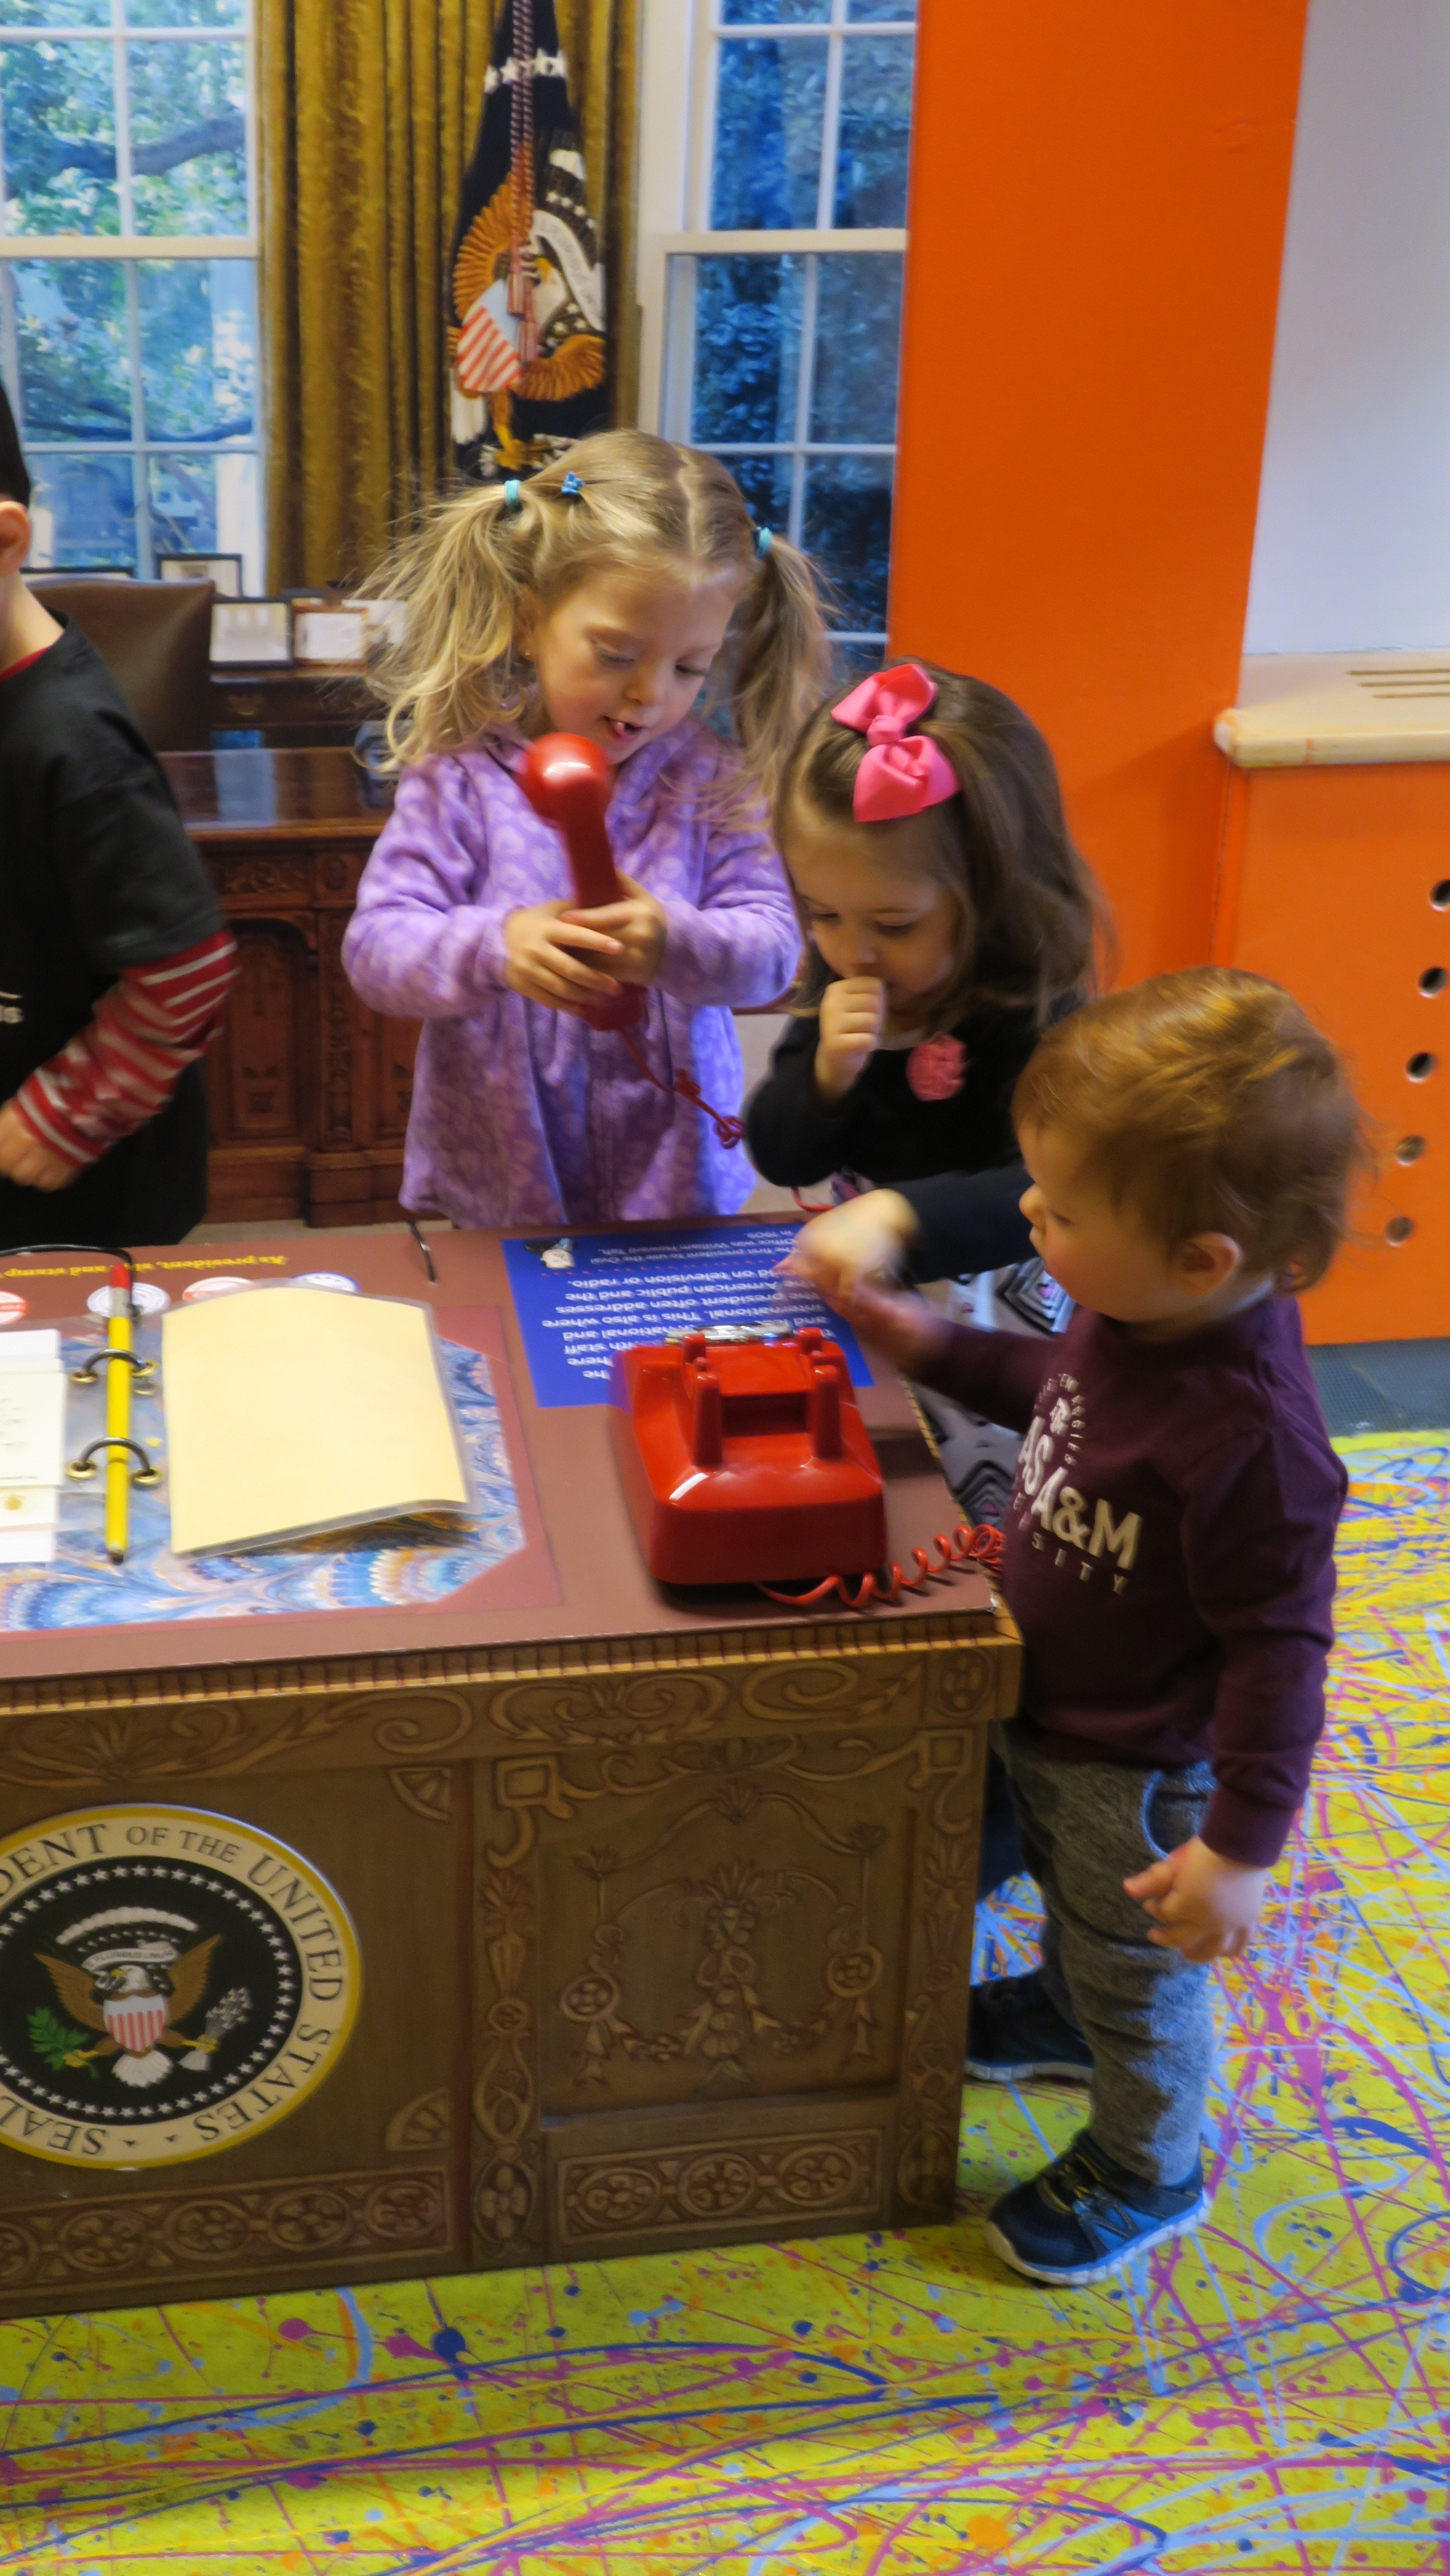 They even got to use the top secret phone in The Oval Office.